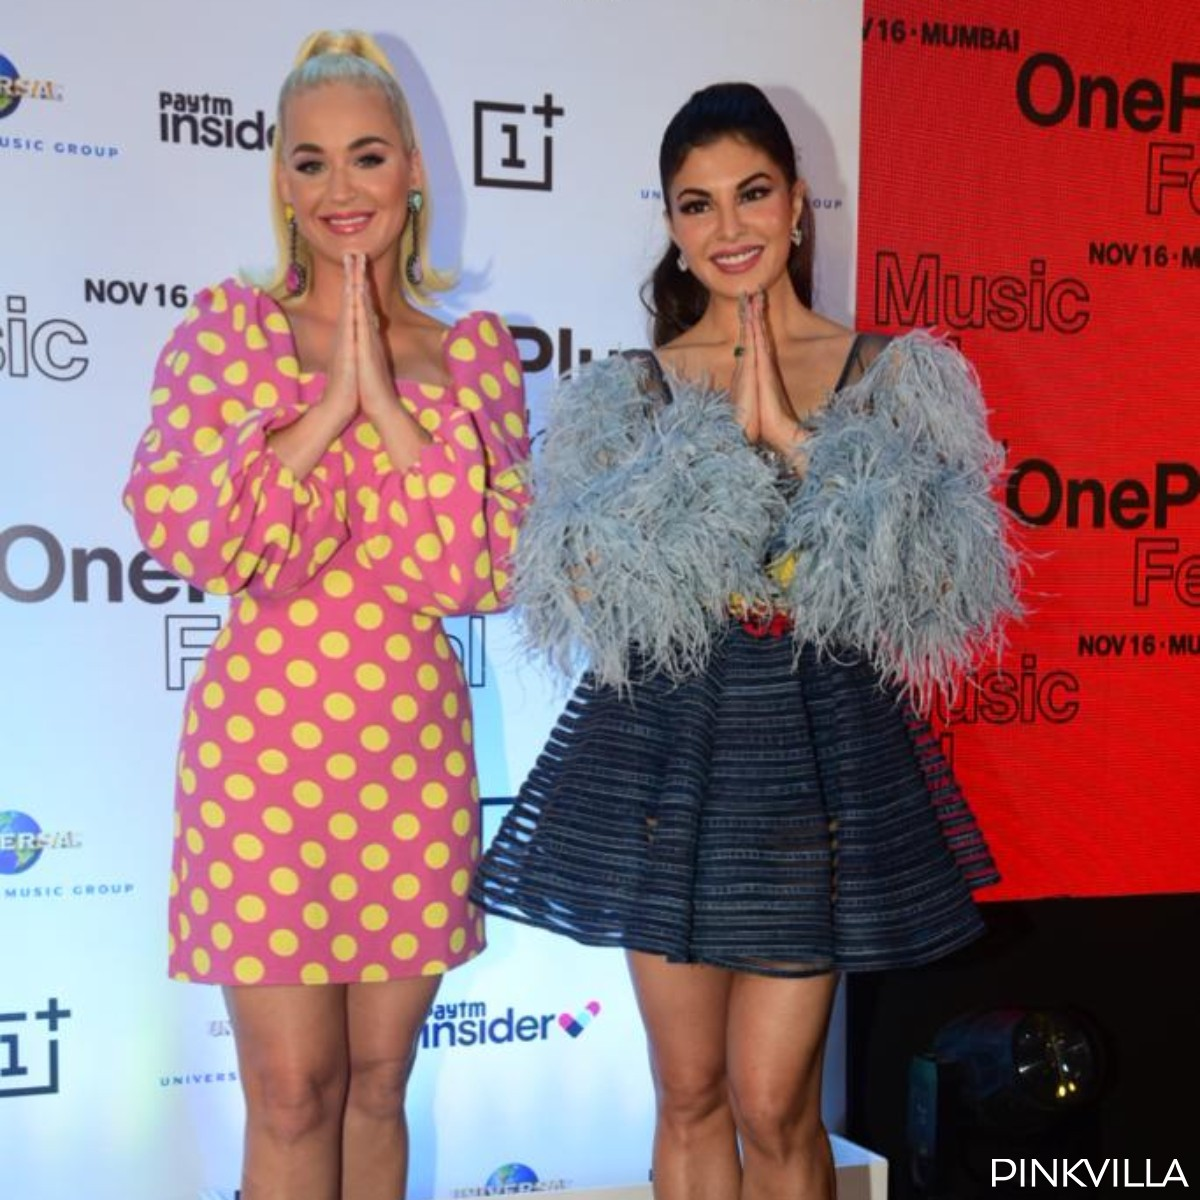 PHOTOS: International singer Katy Perry is in Mumbai; Attends an event with Jacqueline Fernandez